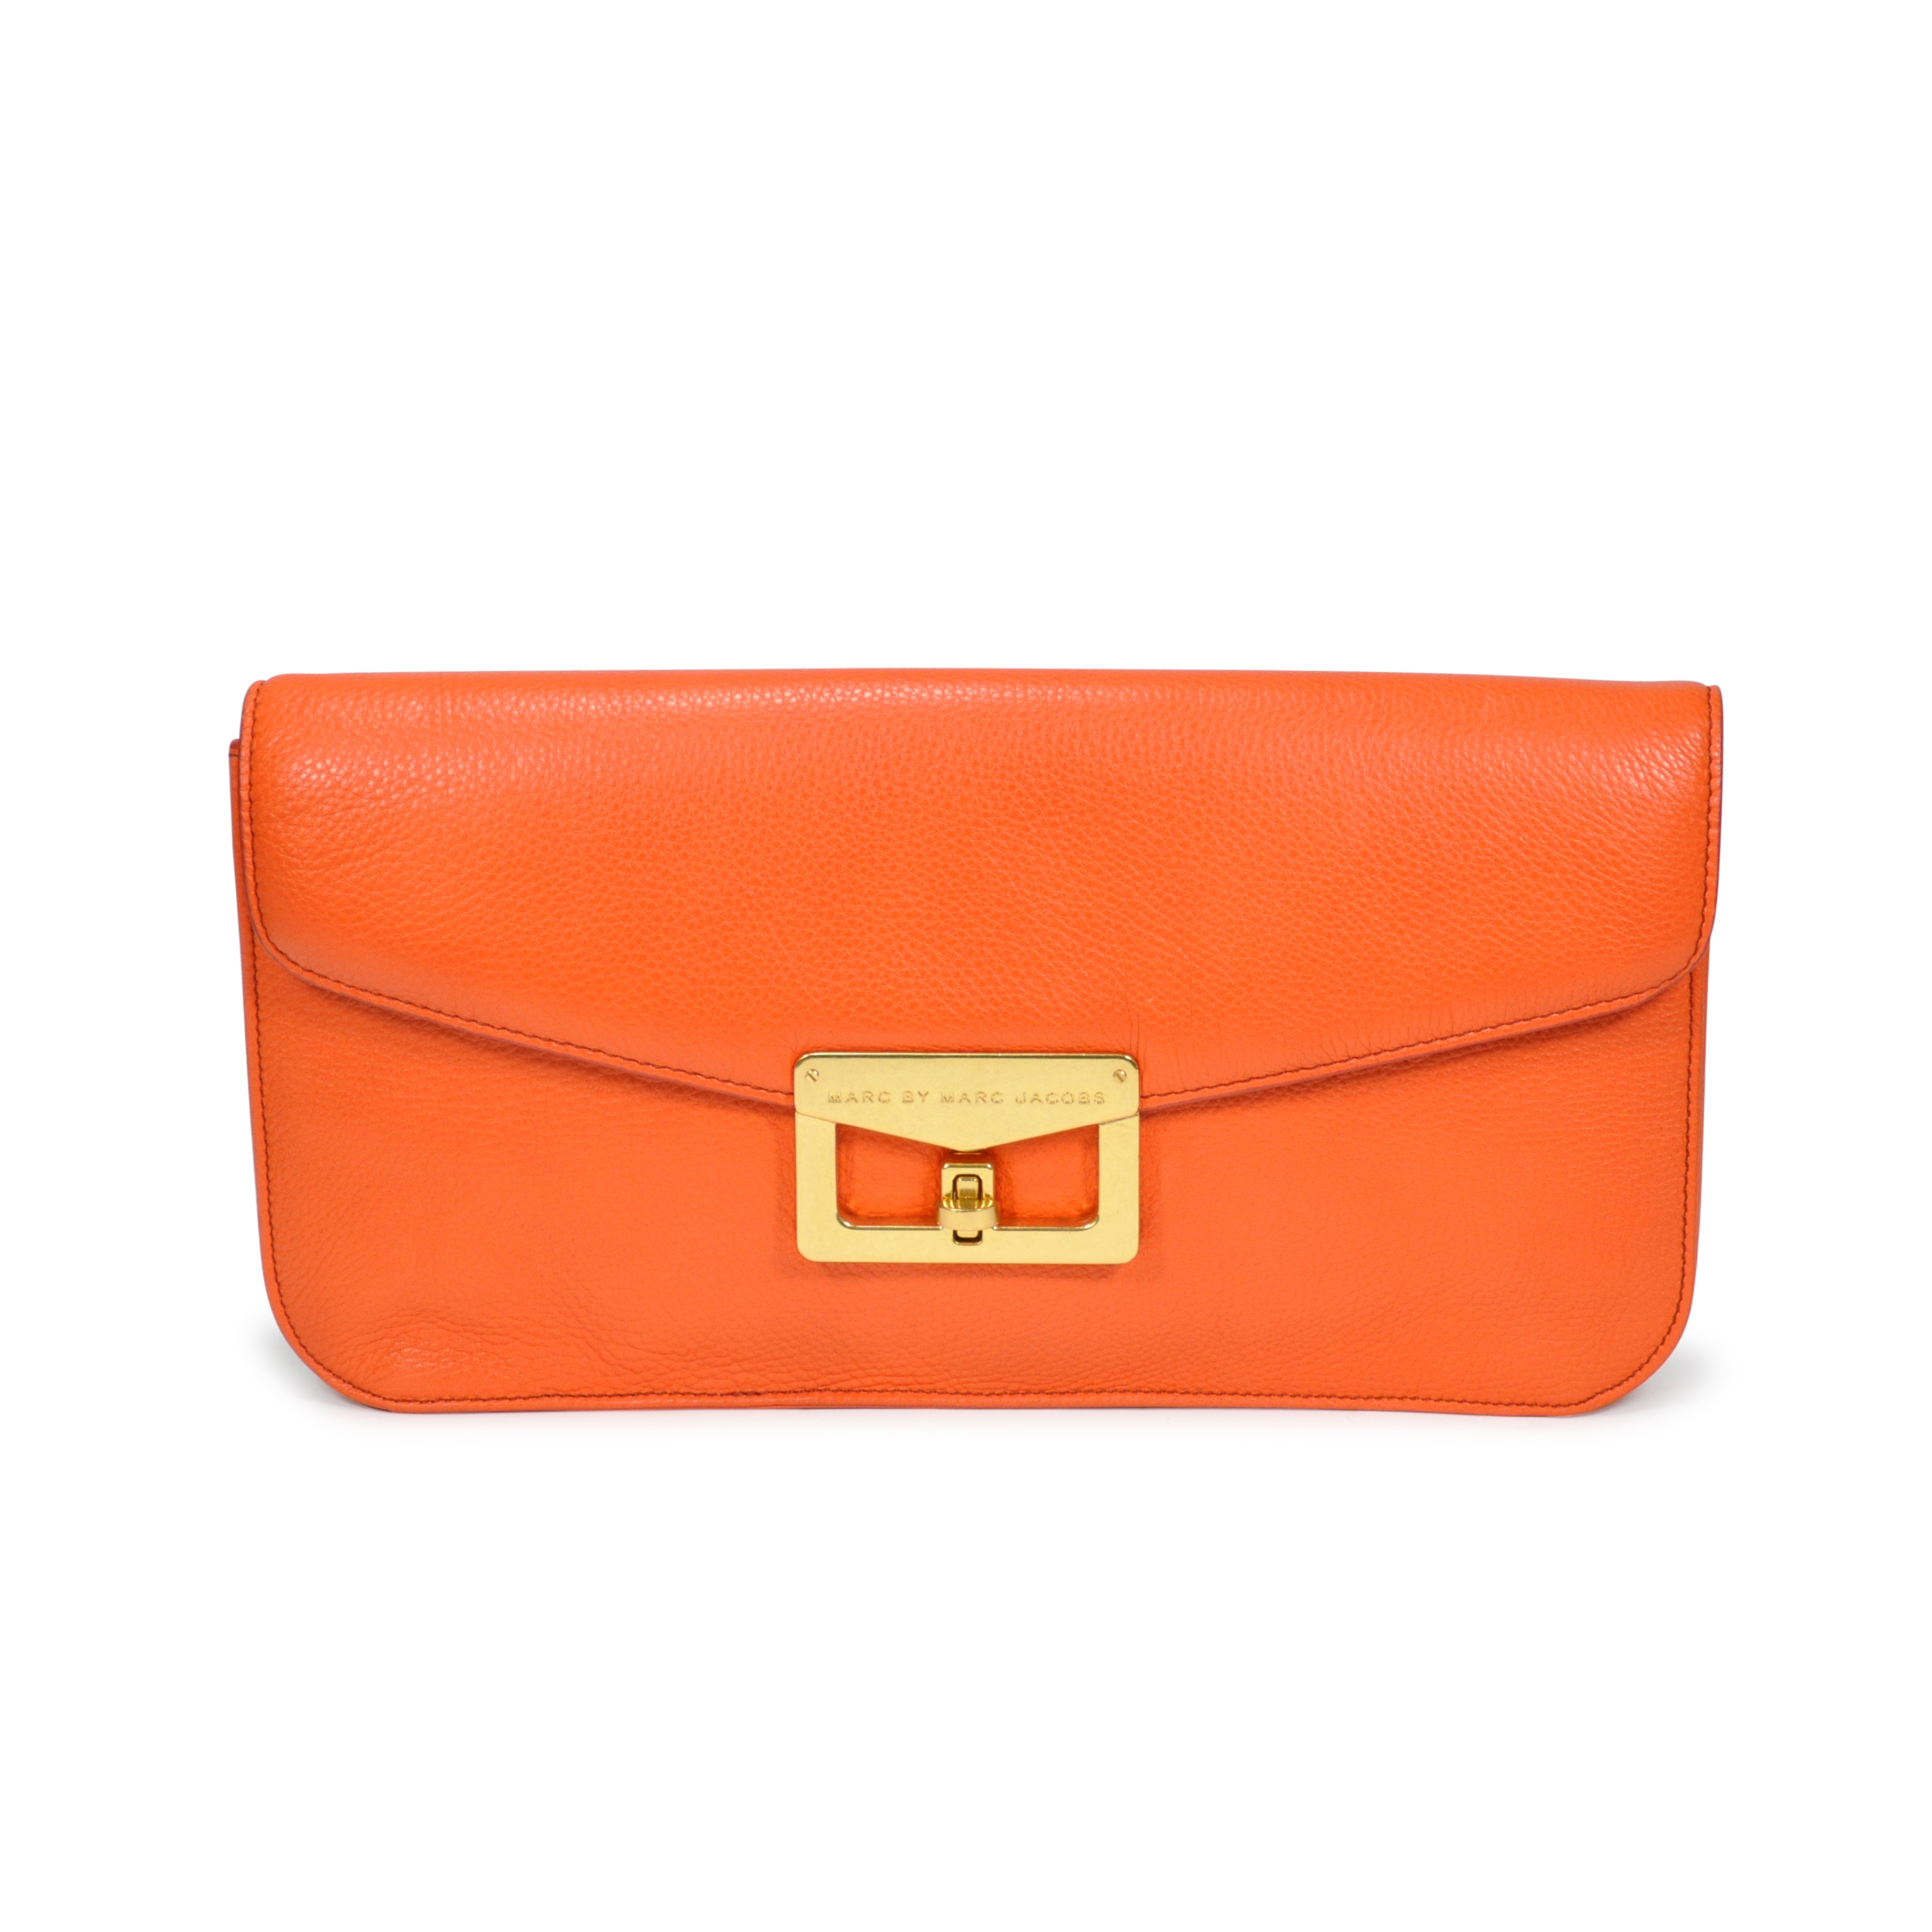 531552582e2 Authentic Second Hand Marc by Marc Jacobs Bianca Clutch (PSS-233-00002) -  THE FIFTH COLLECTION